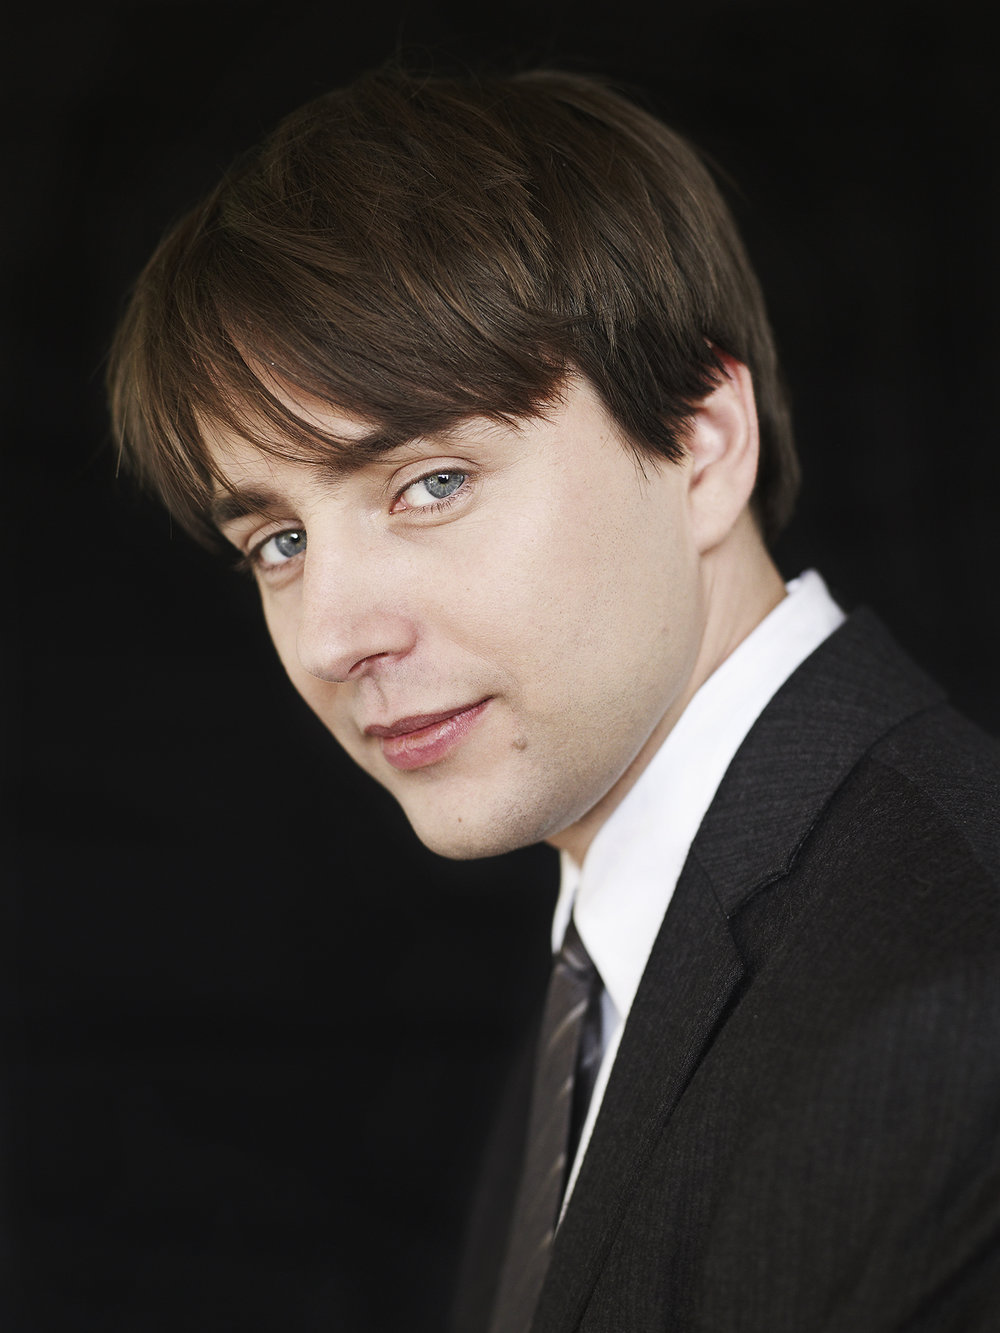 ew_03-vincent-kartheiser-outside_0171.jpg